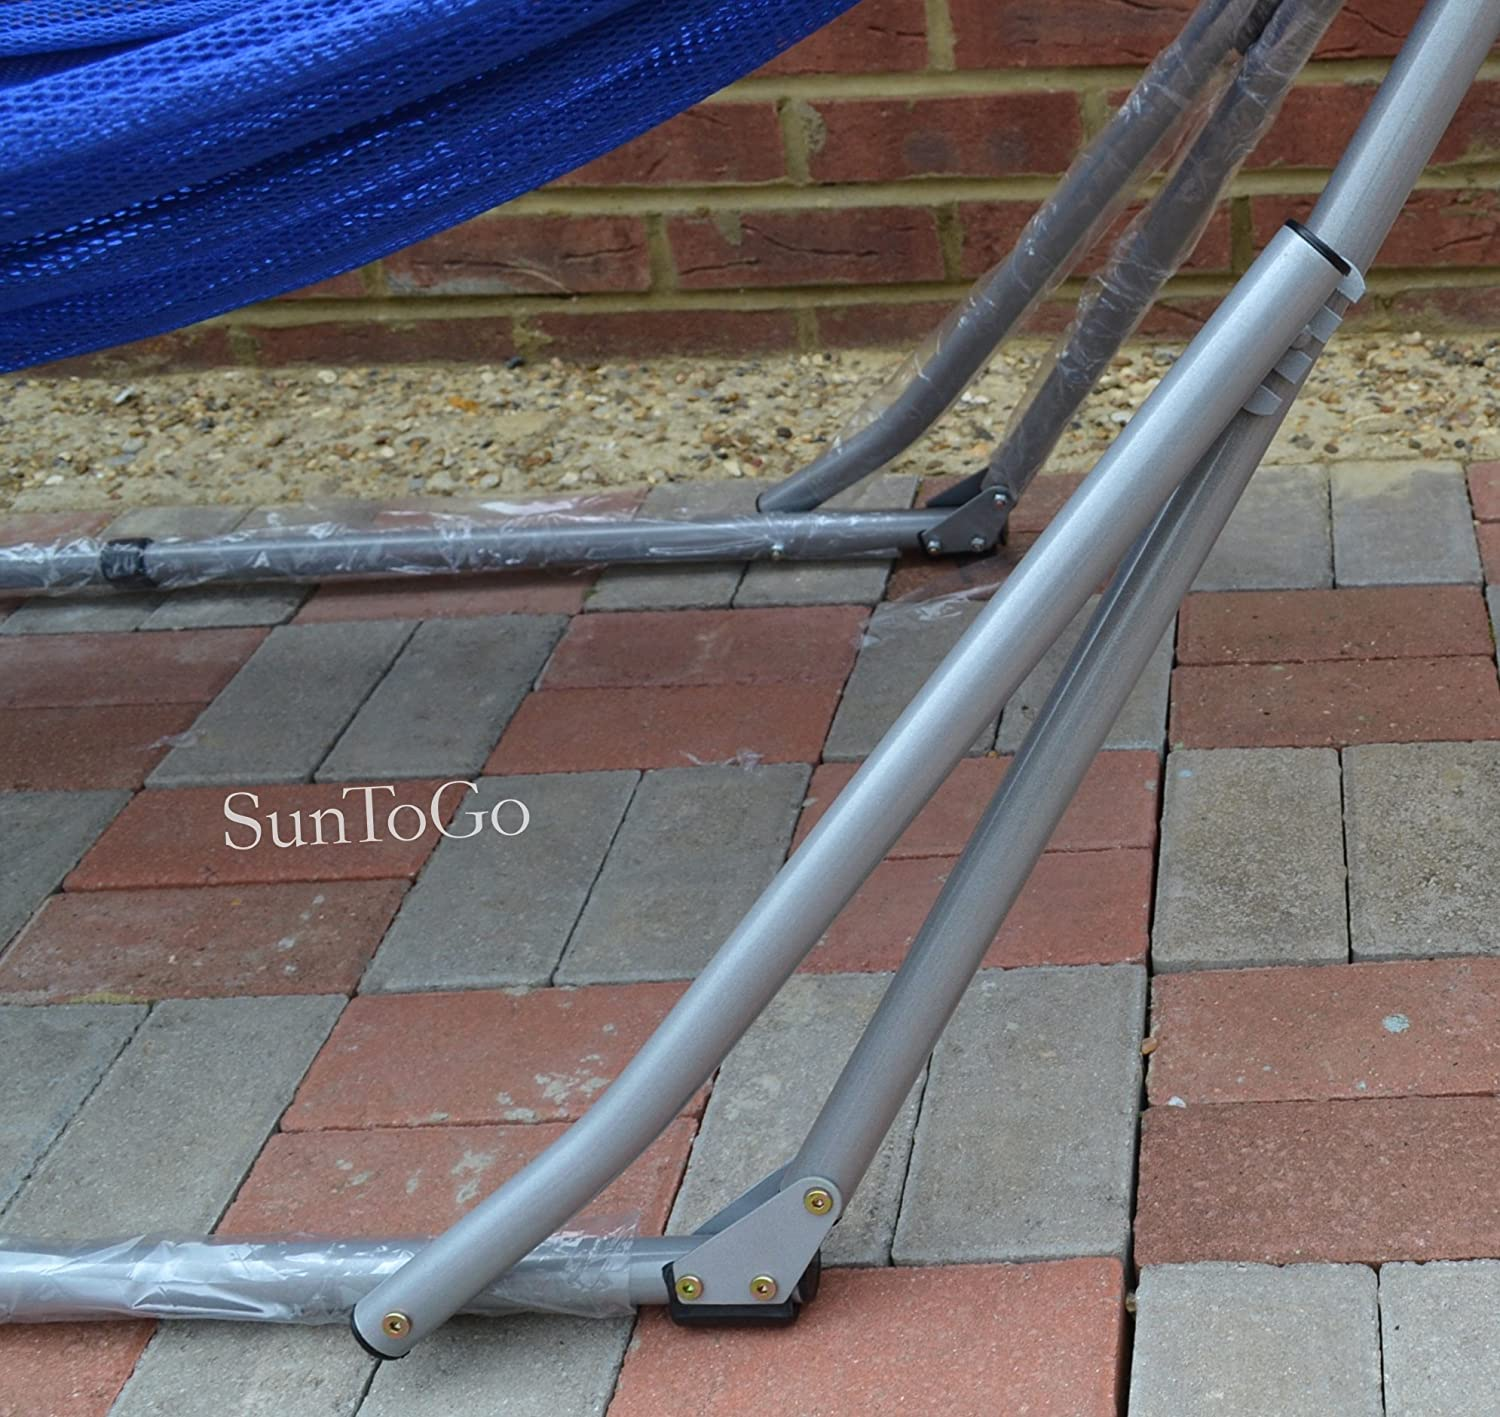 stand swing hammock is porch the metal foldable blue portable to also frame set furniture adorable your folding cloth ideas spruce up with backyard perfect